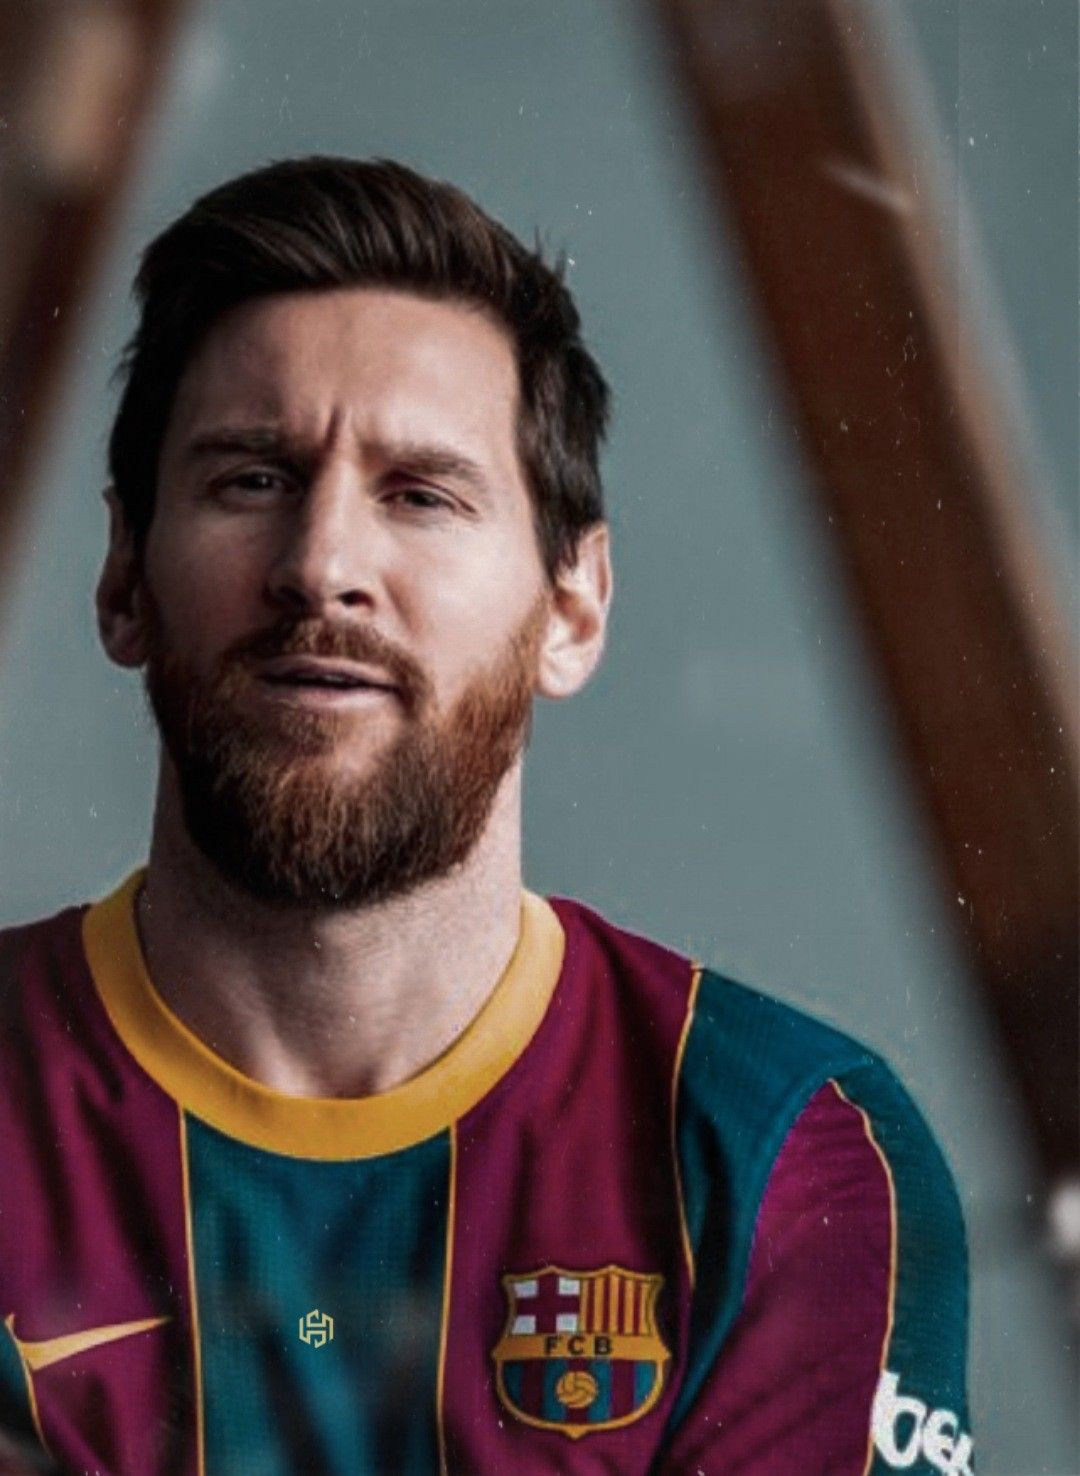 Pin By بـرنـسـيـســة On Barca Hsdesigns Messi Lional Messi Lionel Messi